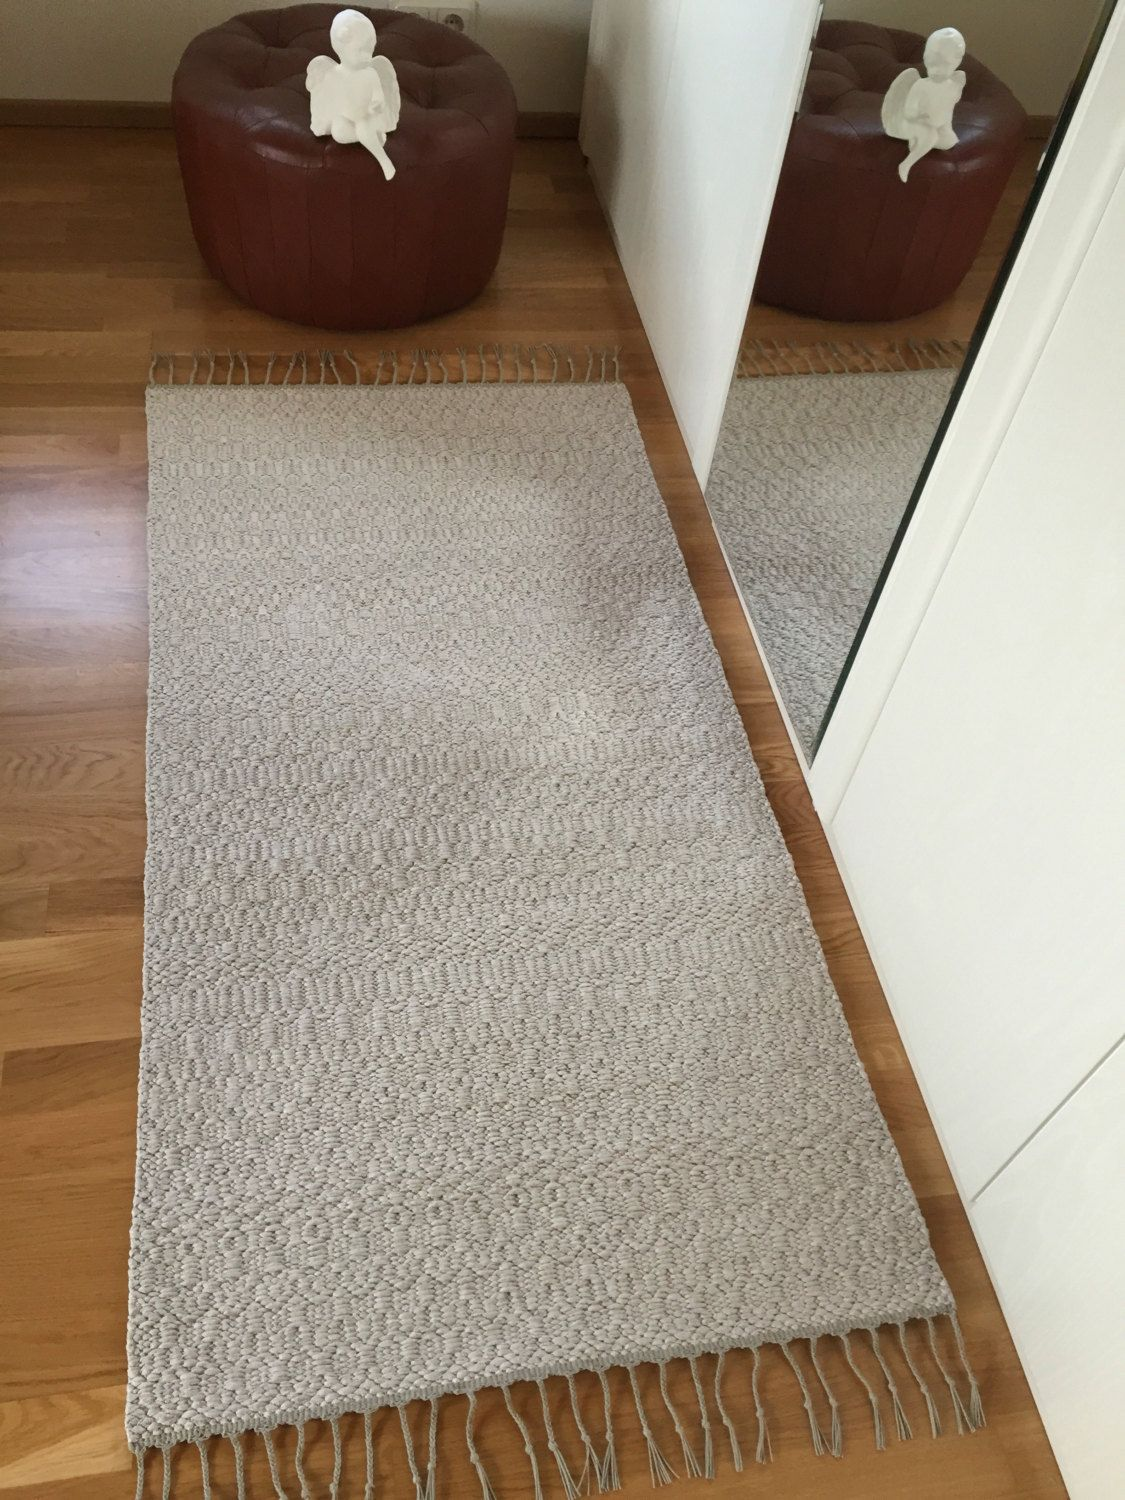 Modern Rustic Rug Off White Grey Mix Cotton And Linen Rug Hand - Off white bathroom rugs for bathroom decorating ideas